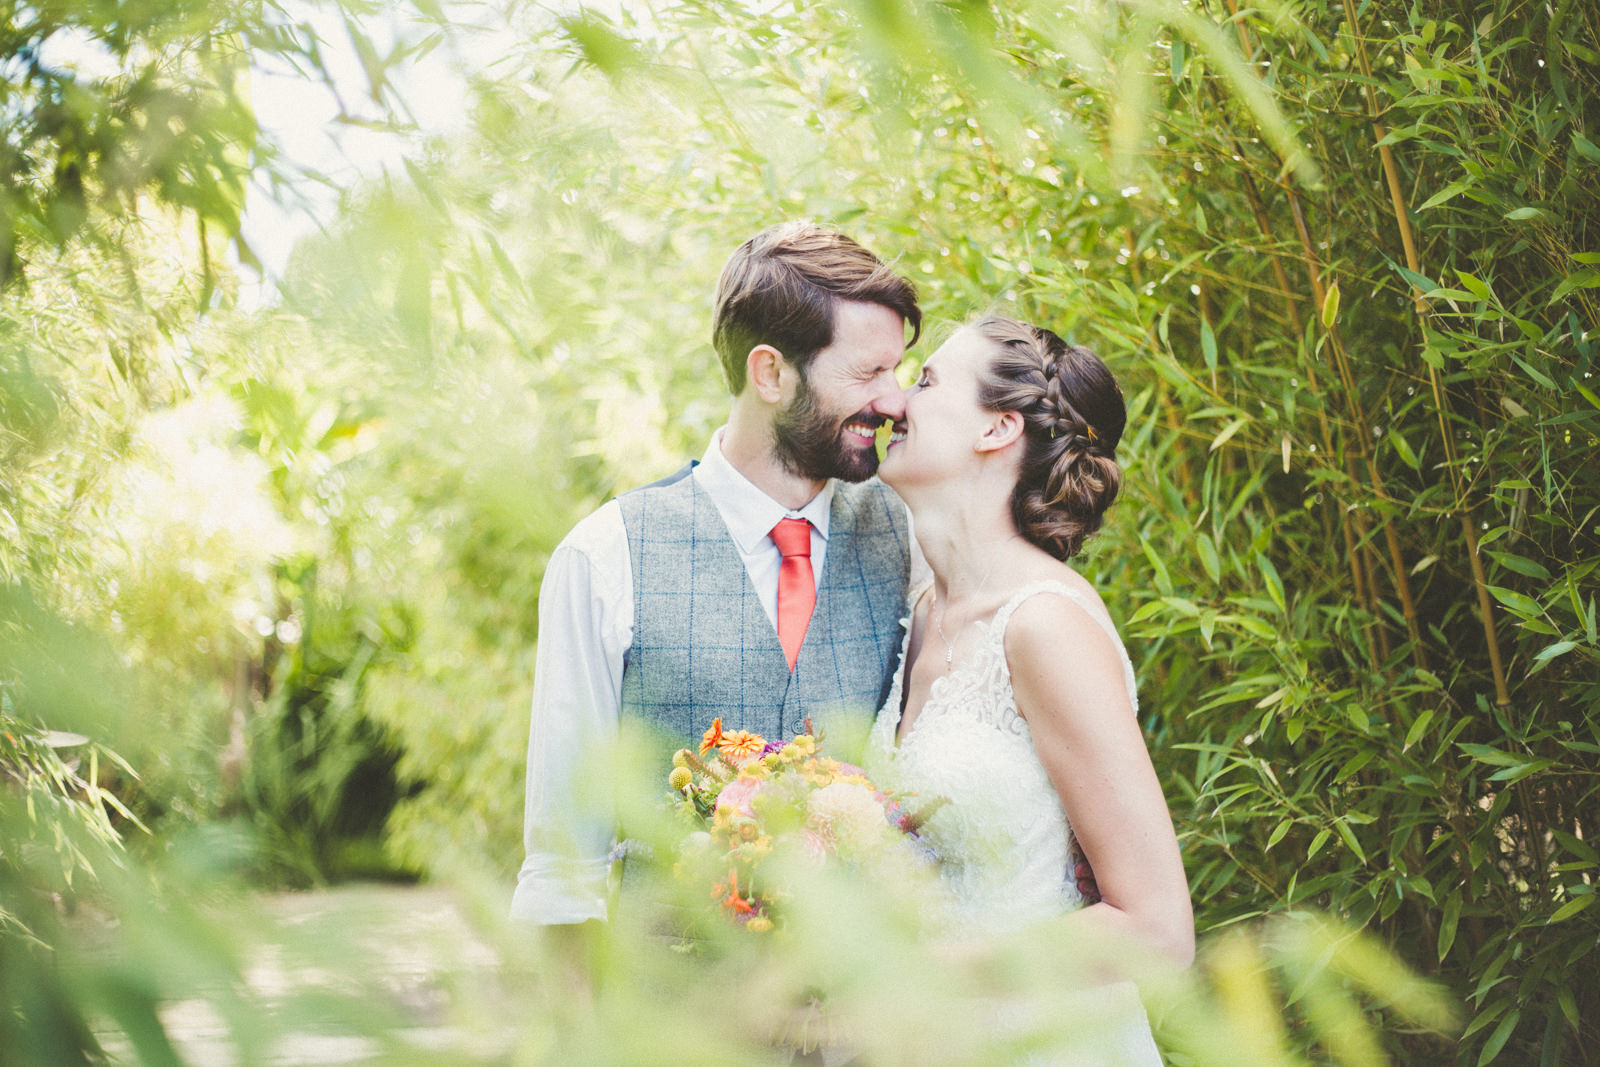 Wedding Photography at Splottsmoor Farm